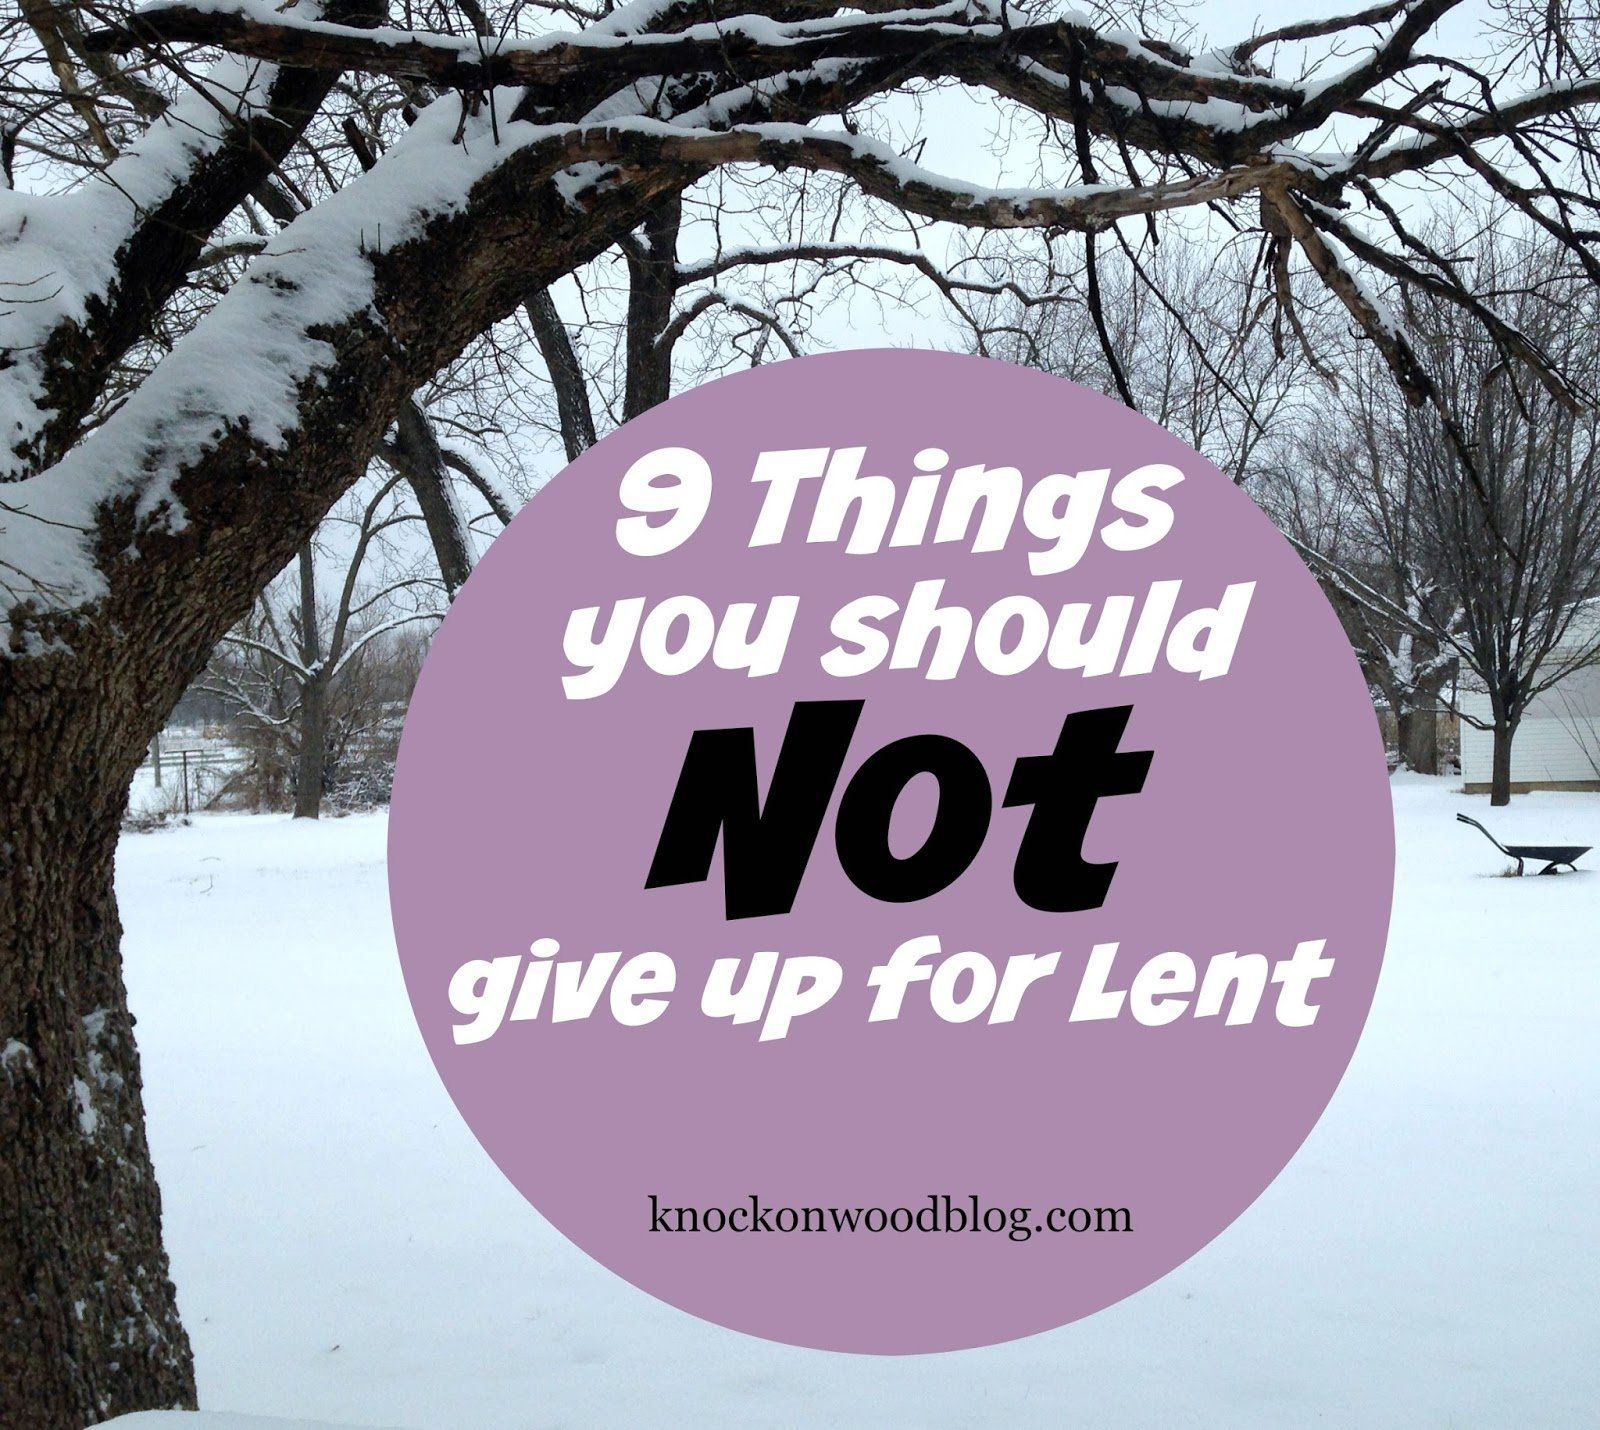 10 Stylish Ideas Of Things To Give Up For Lent knock on wood 9 things you definitely should not give up for lent 4